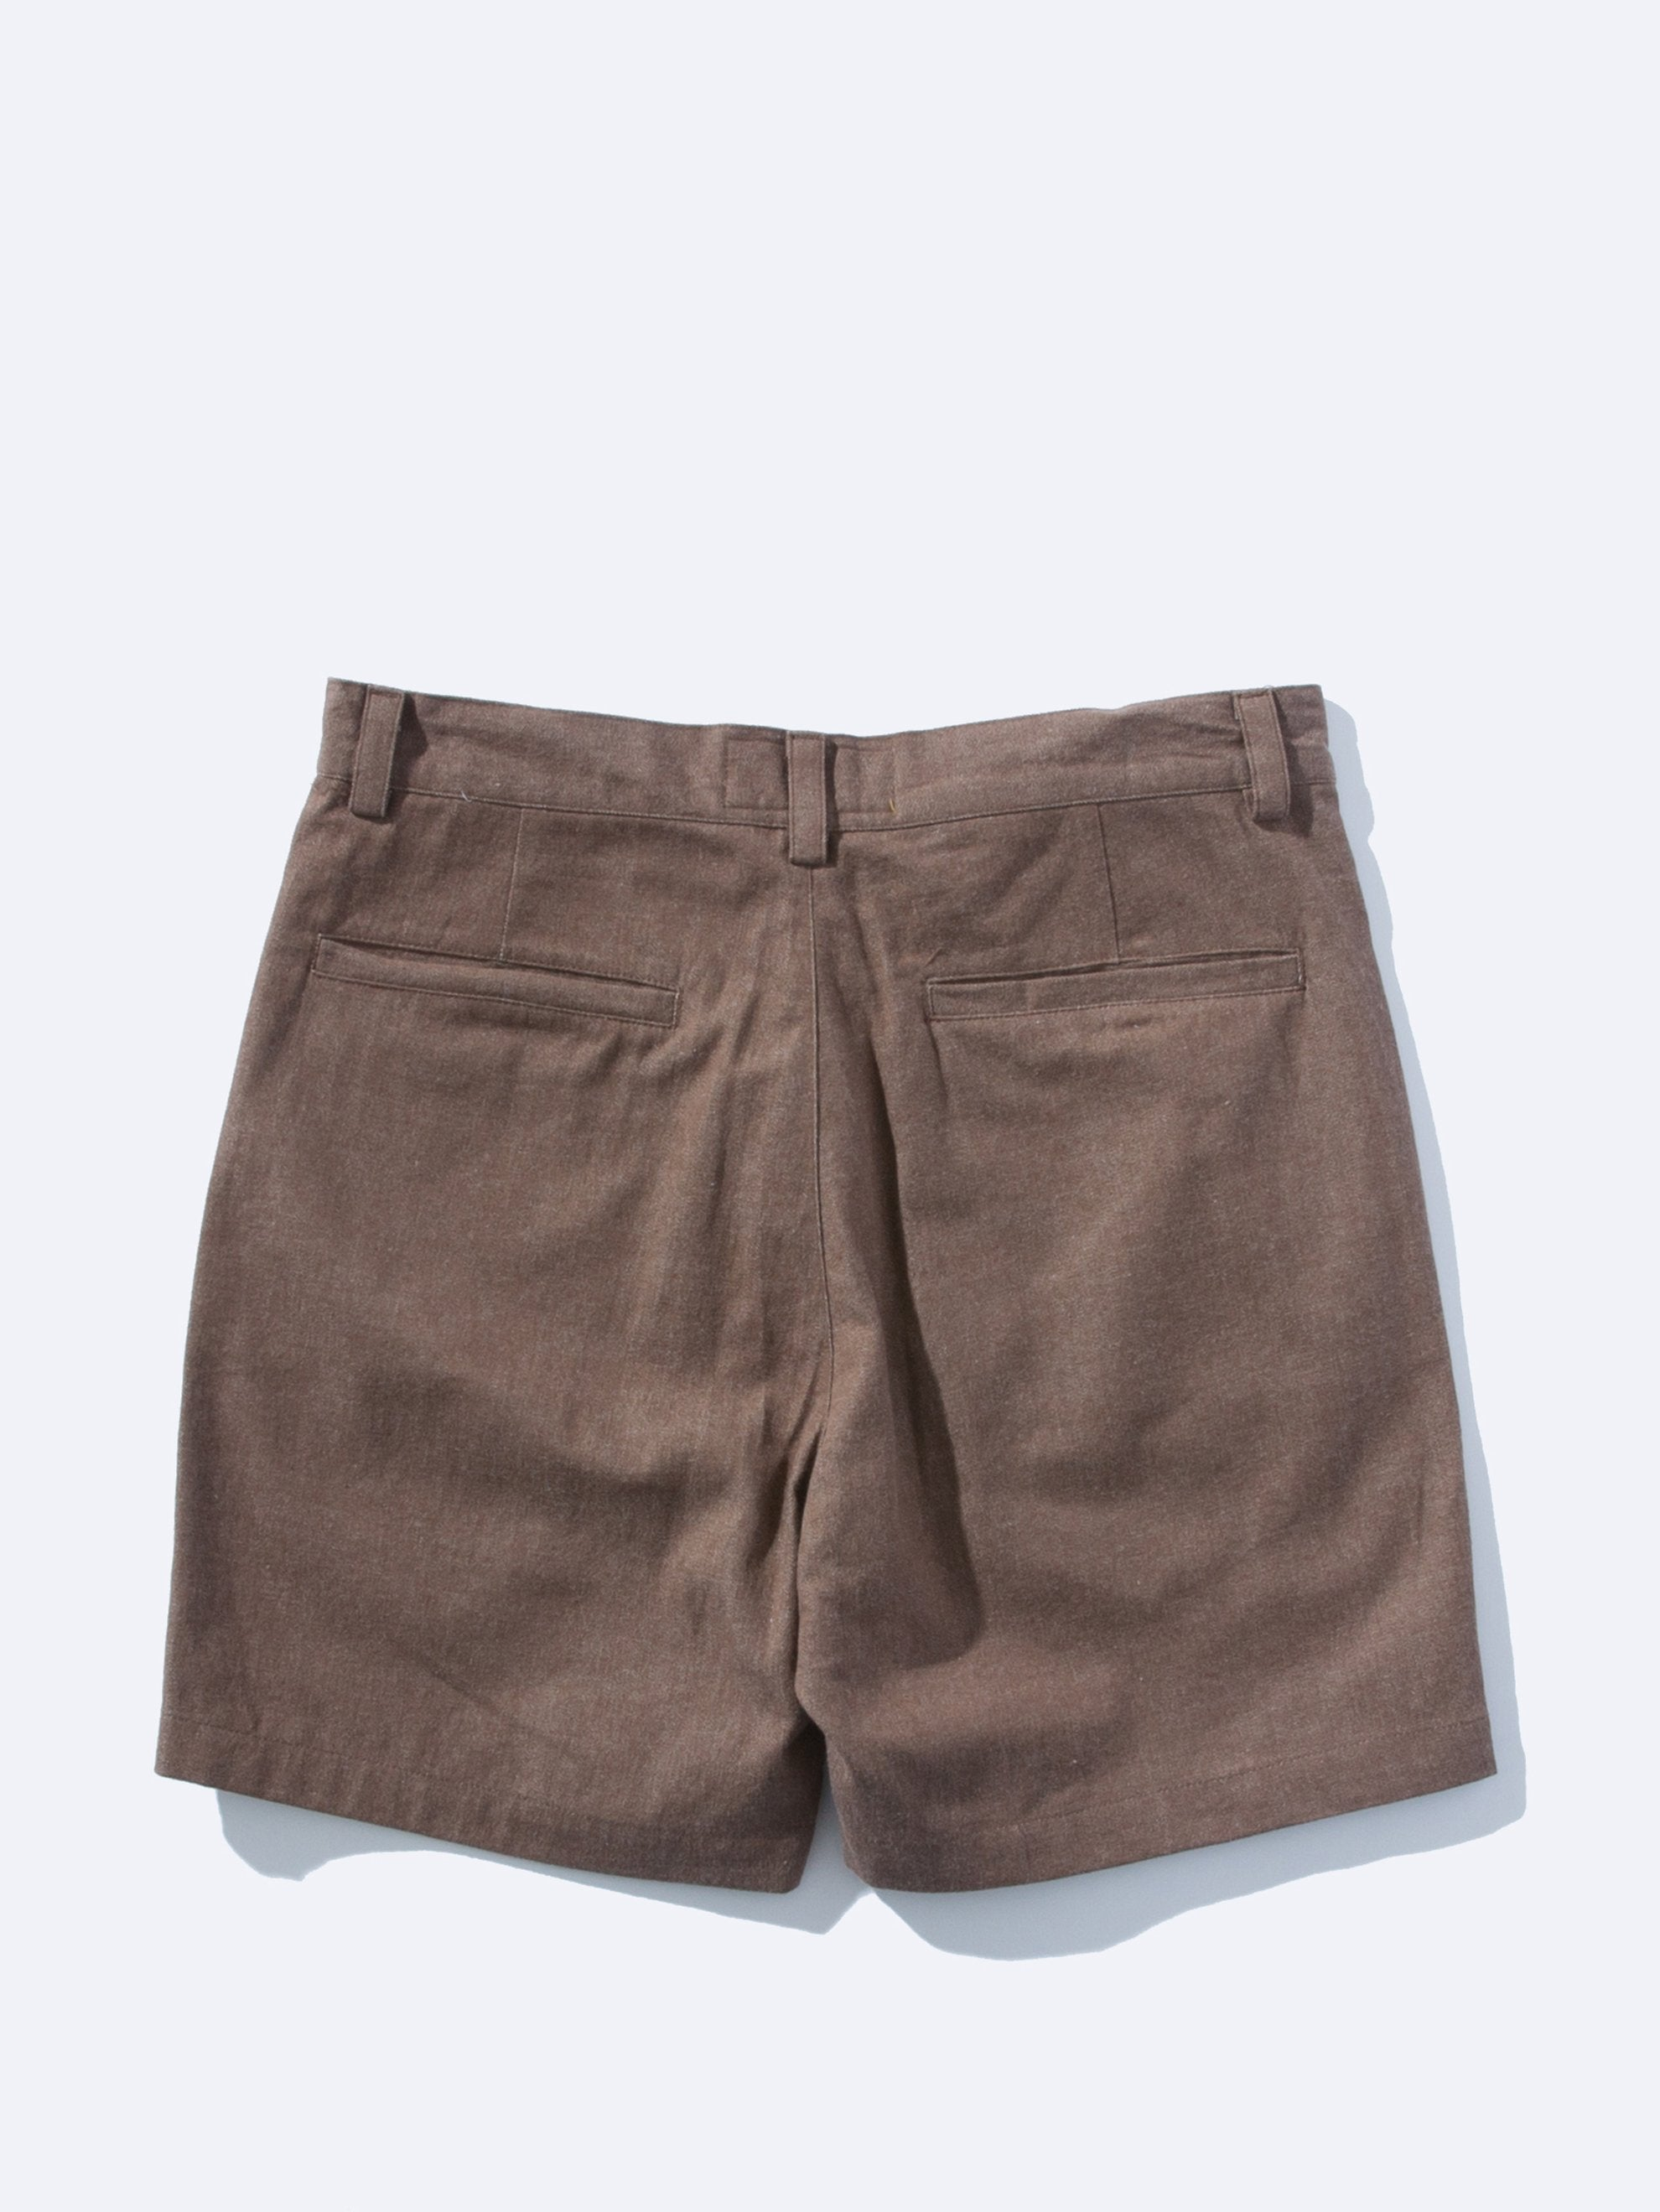 M11 Brown Chino Short 2